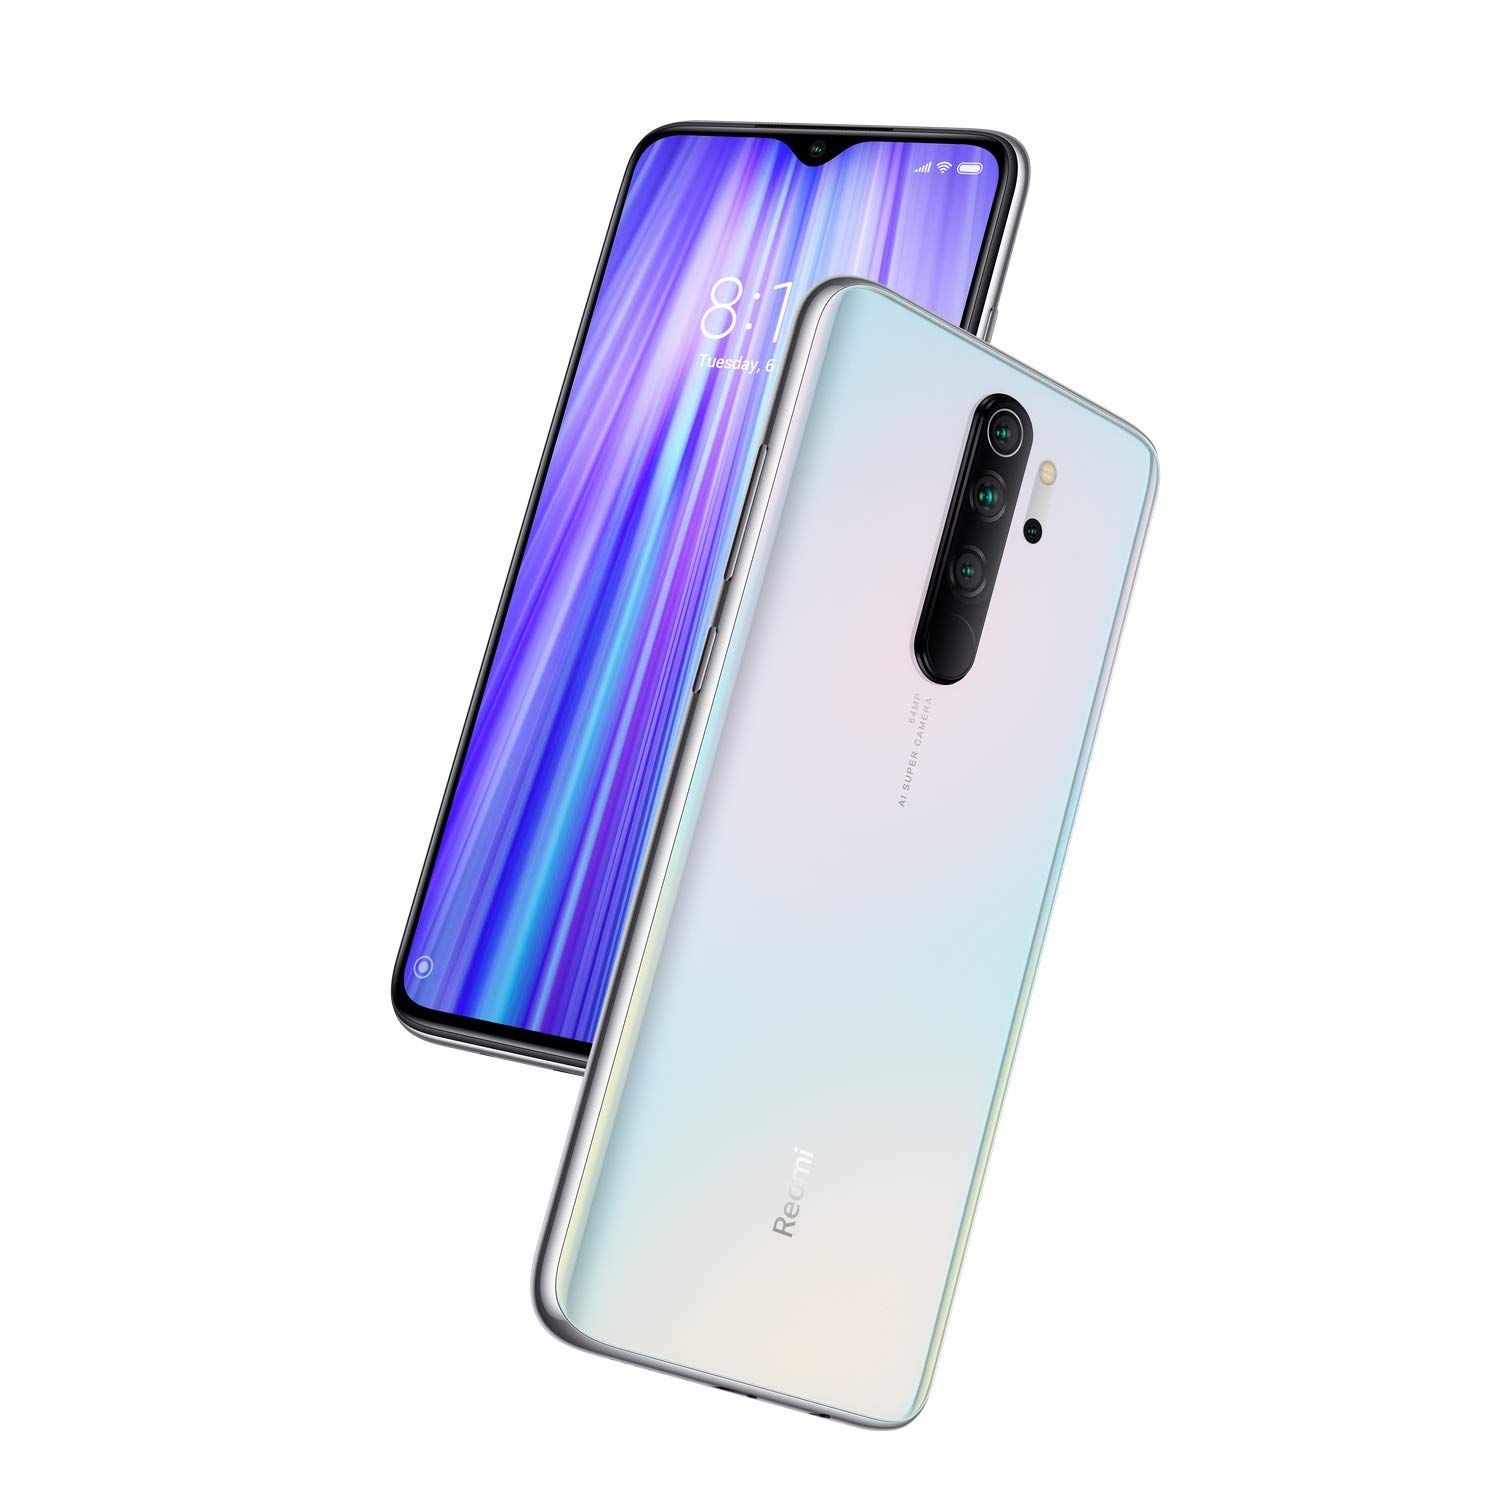 Redmi Note 8 Pro Halo White 6gb Ram 128gb Storage With Helio G90t Processor Amazon In Electronics Phone Best Smartphone New Phones